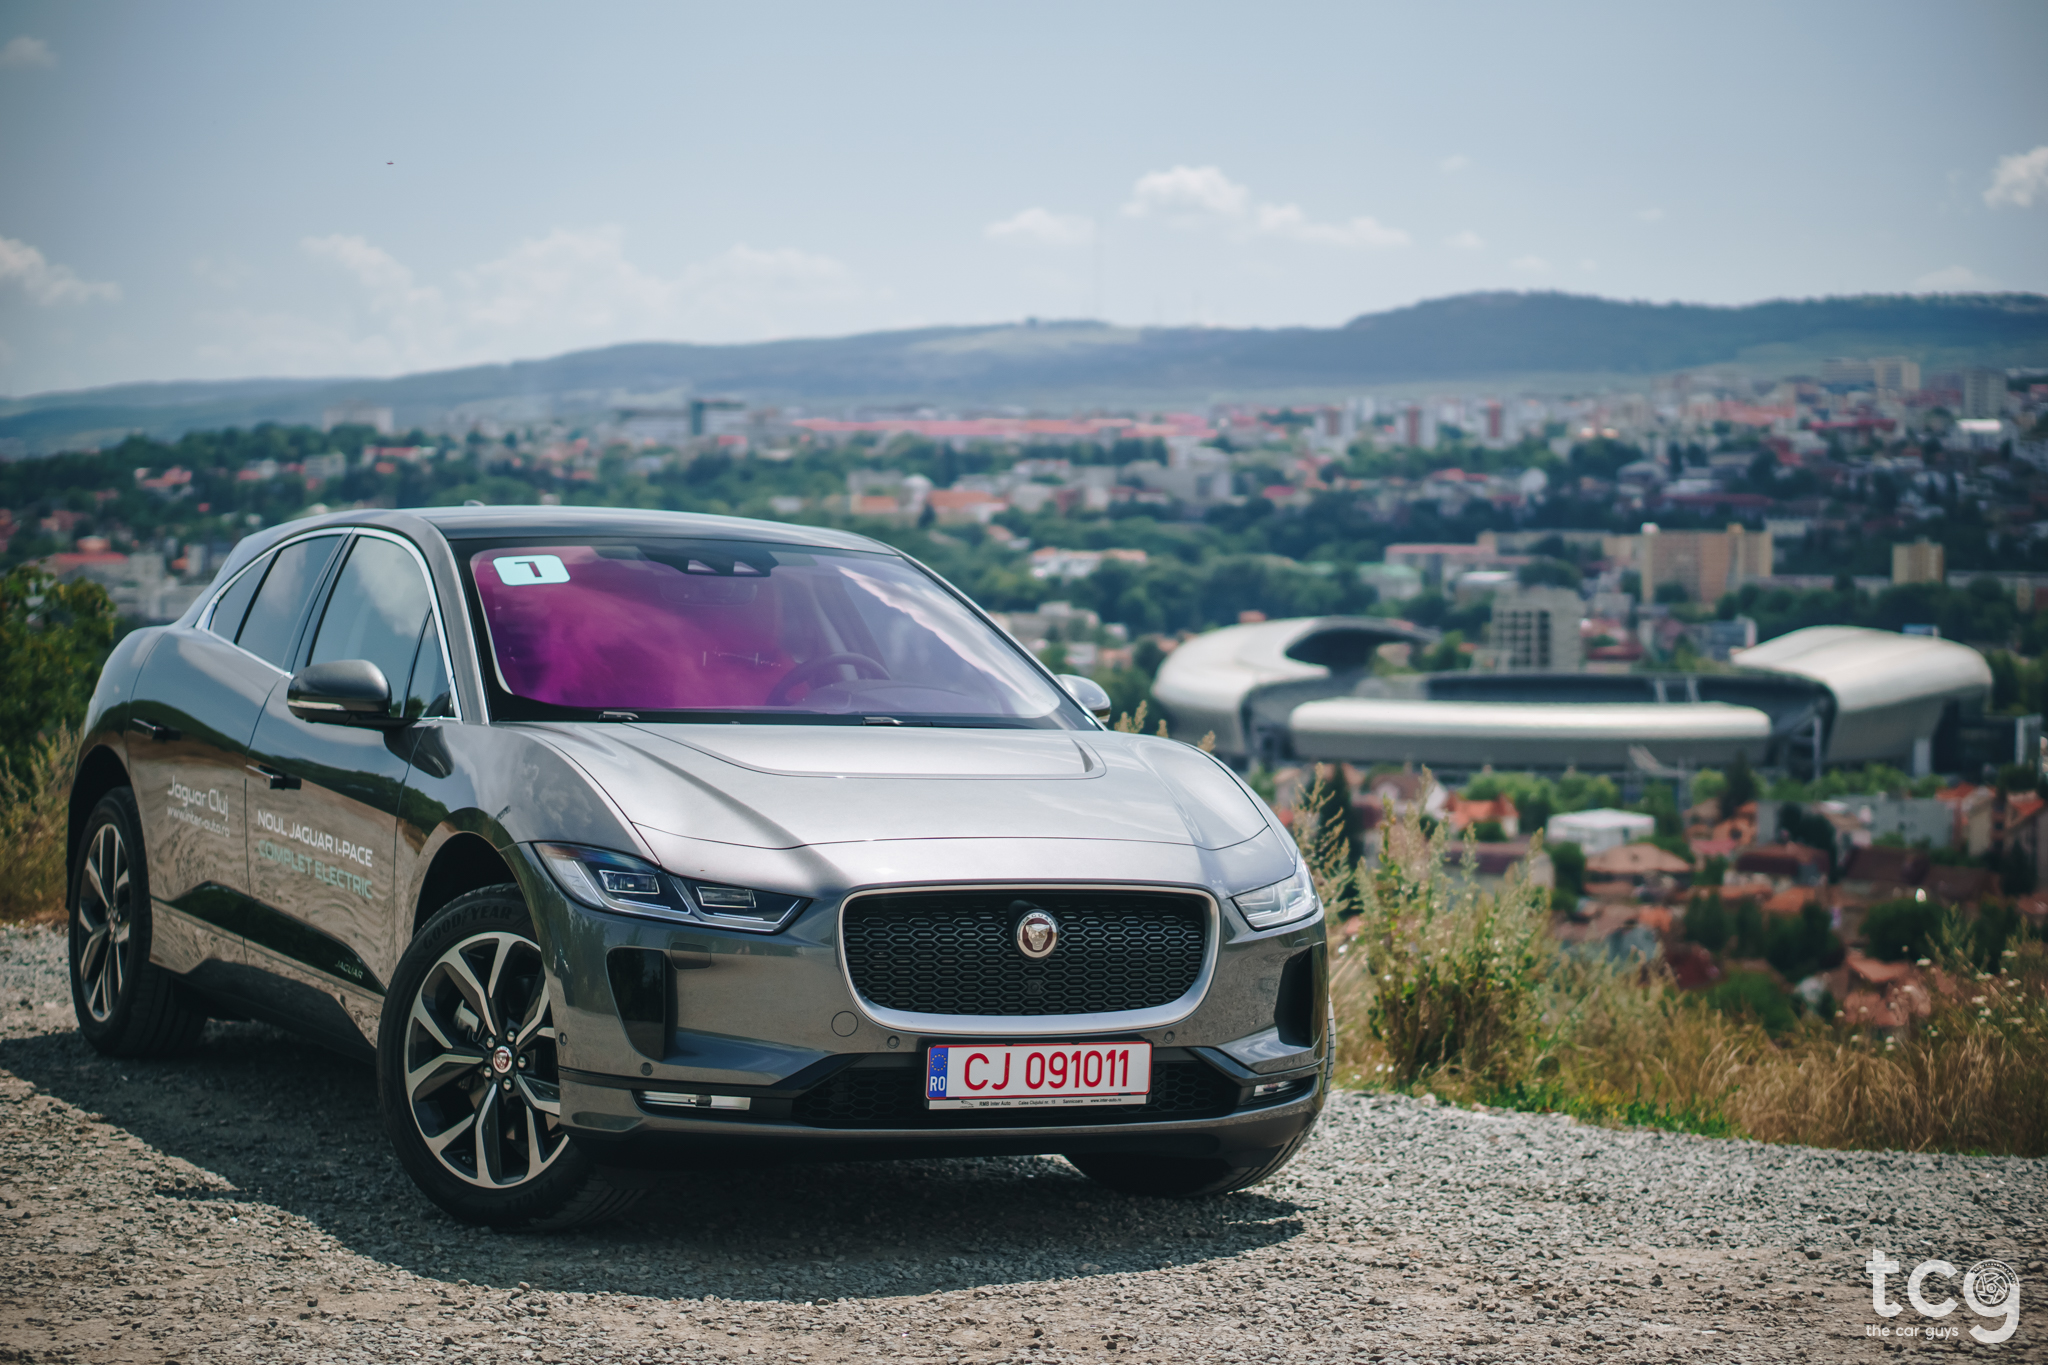 Jaguar I-Pace - The future is now!